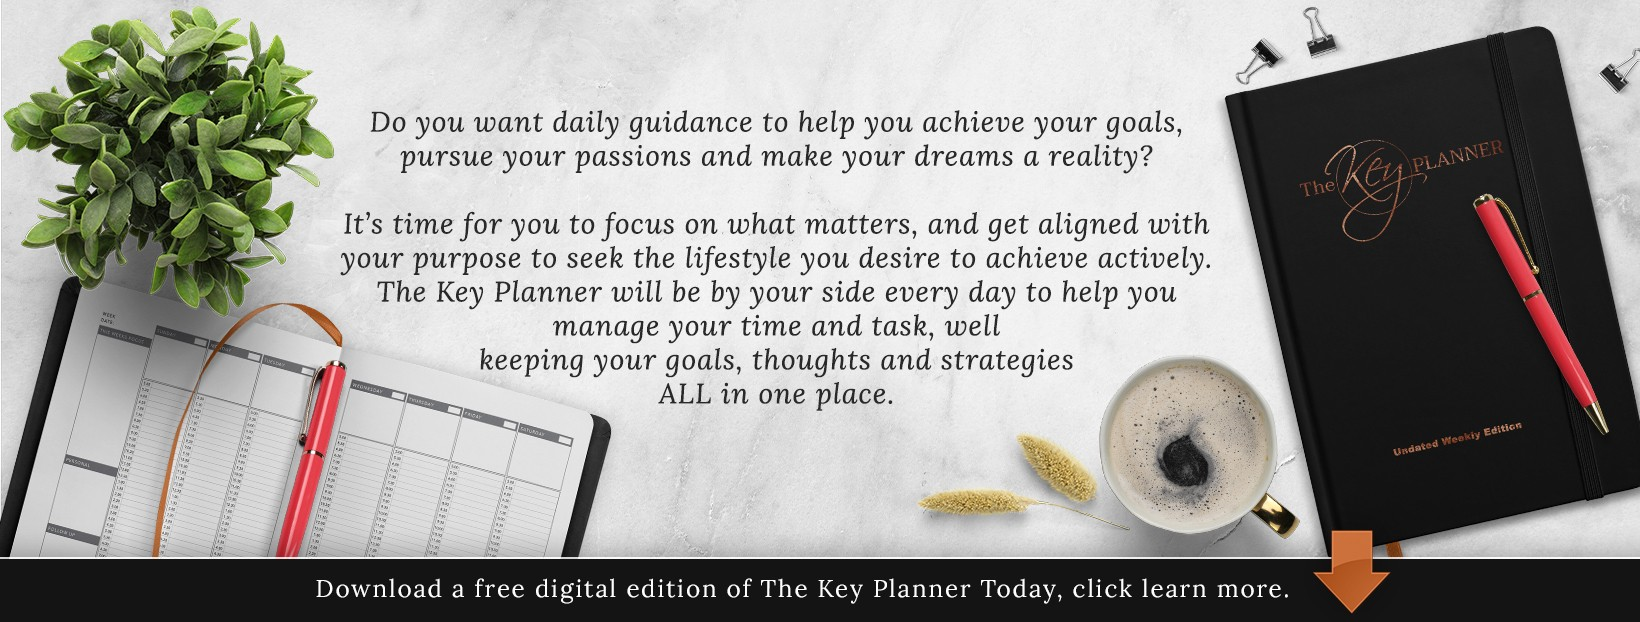 The Key Planner | LinkedIn